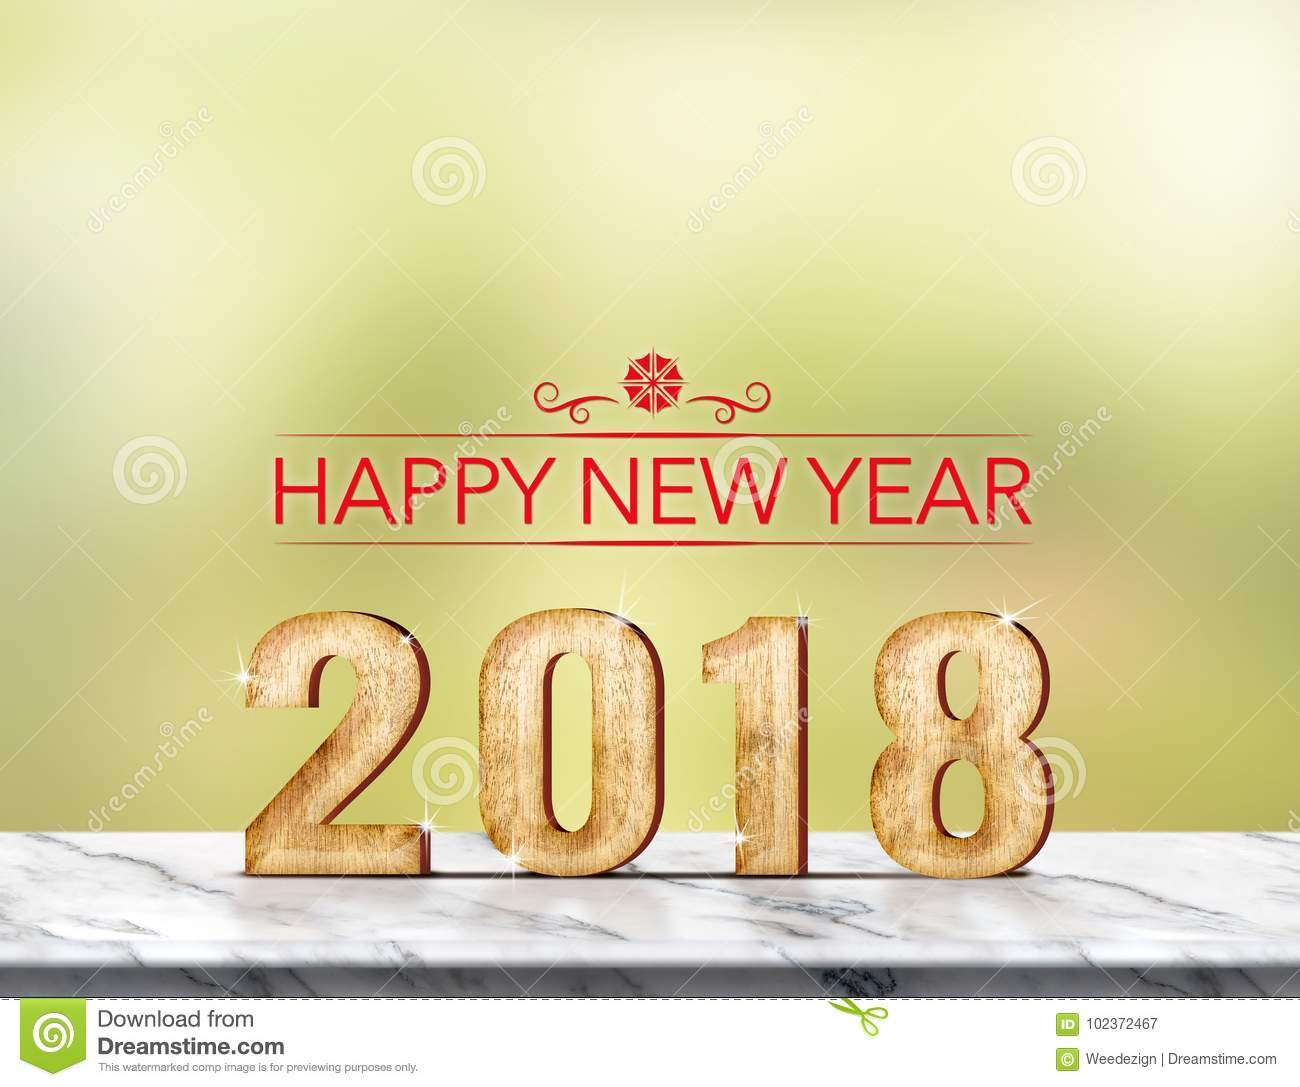 Happy new year 2018 3d rendering on marble table at green abst